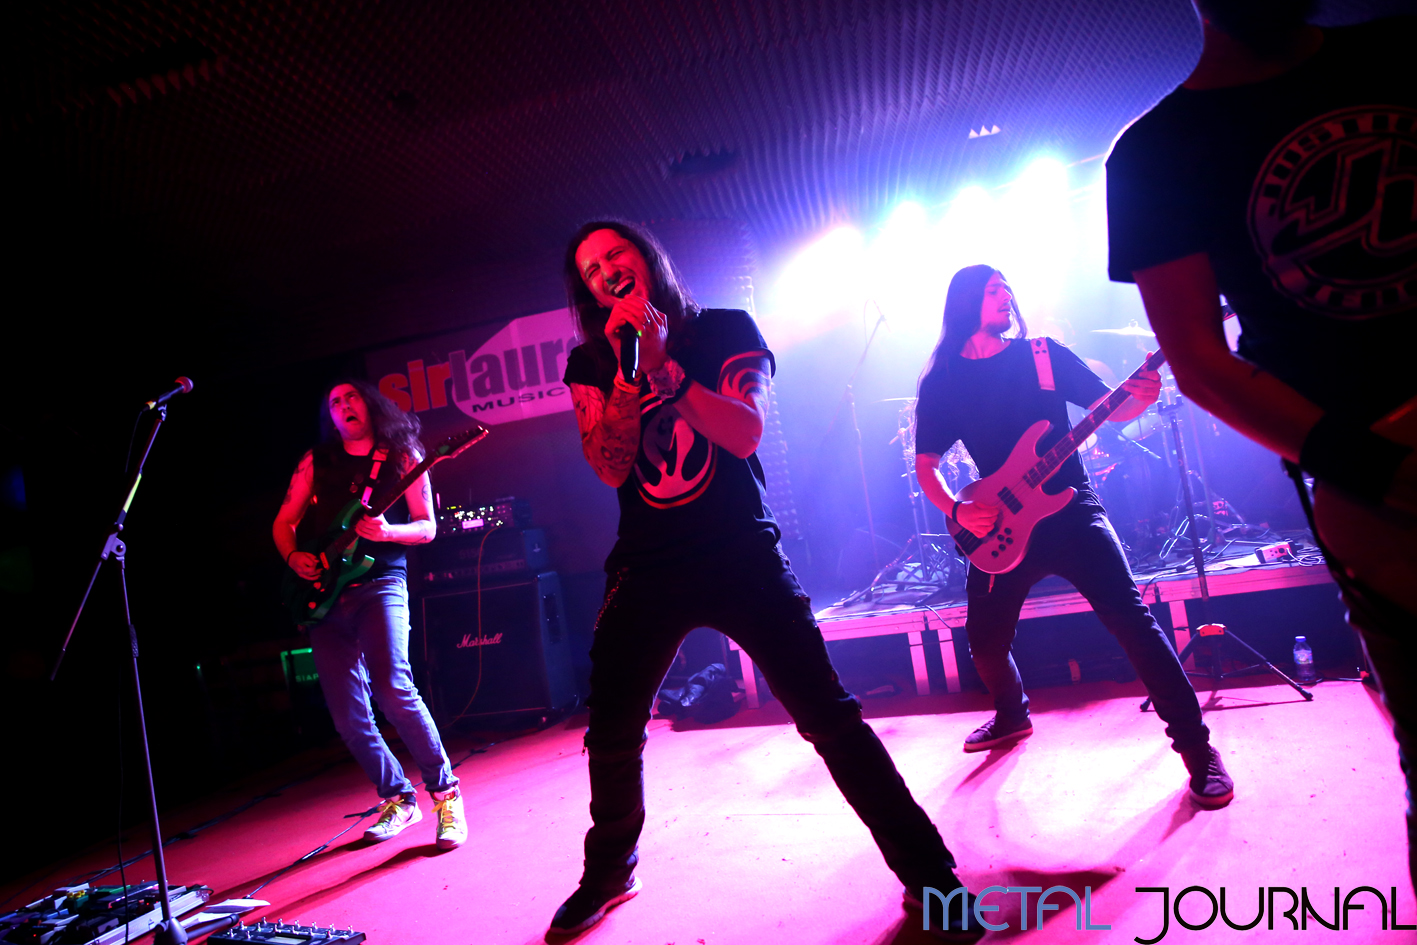 skeletoon oviedo metal journal 2018 pic 1